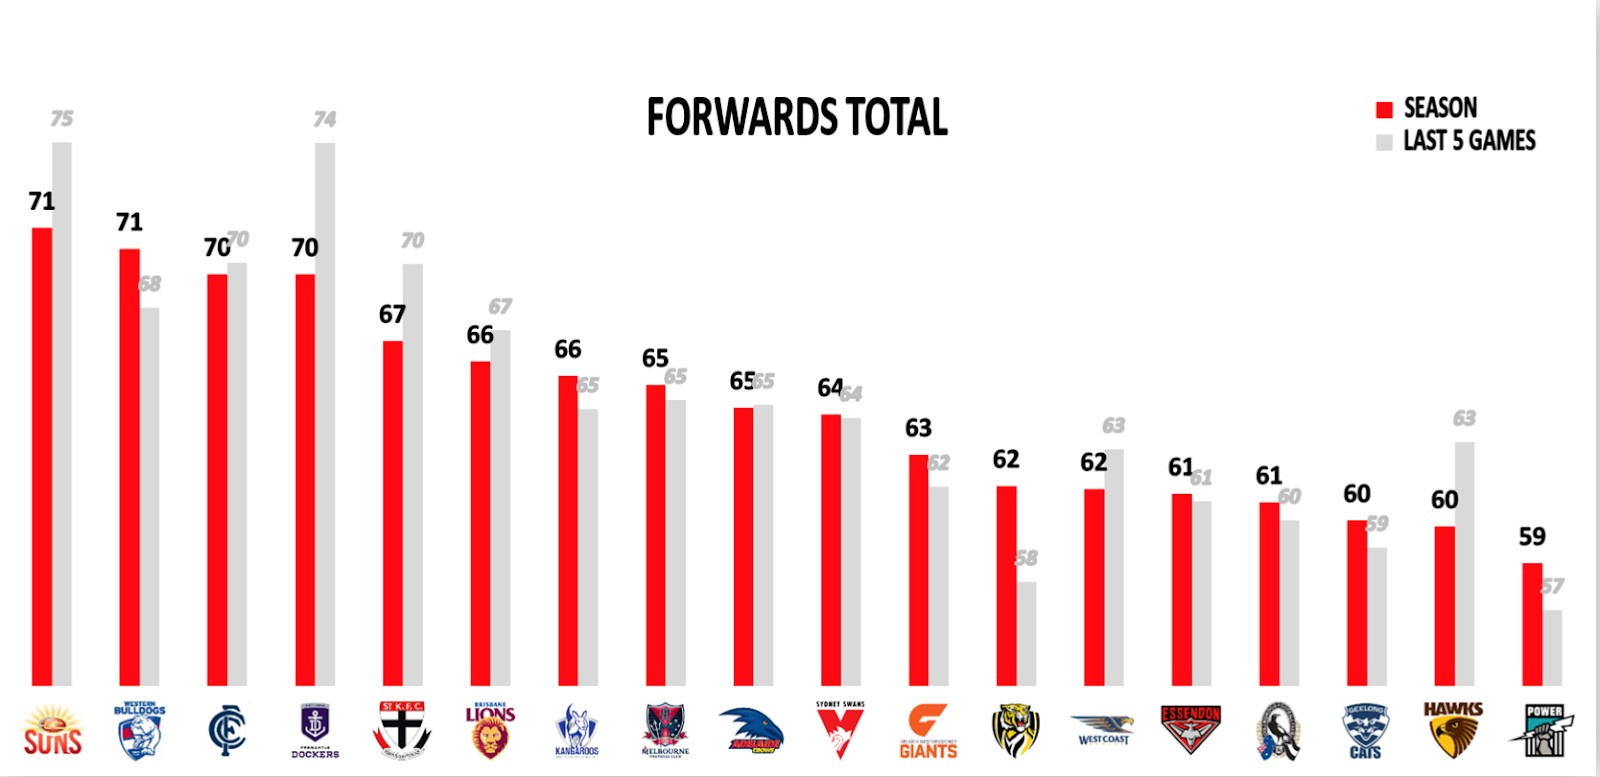 Points Against - Forwards